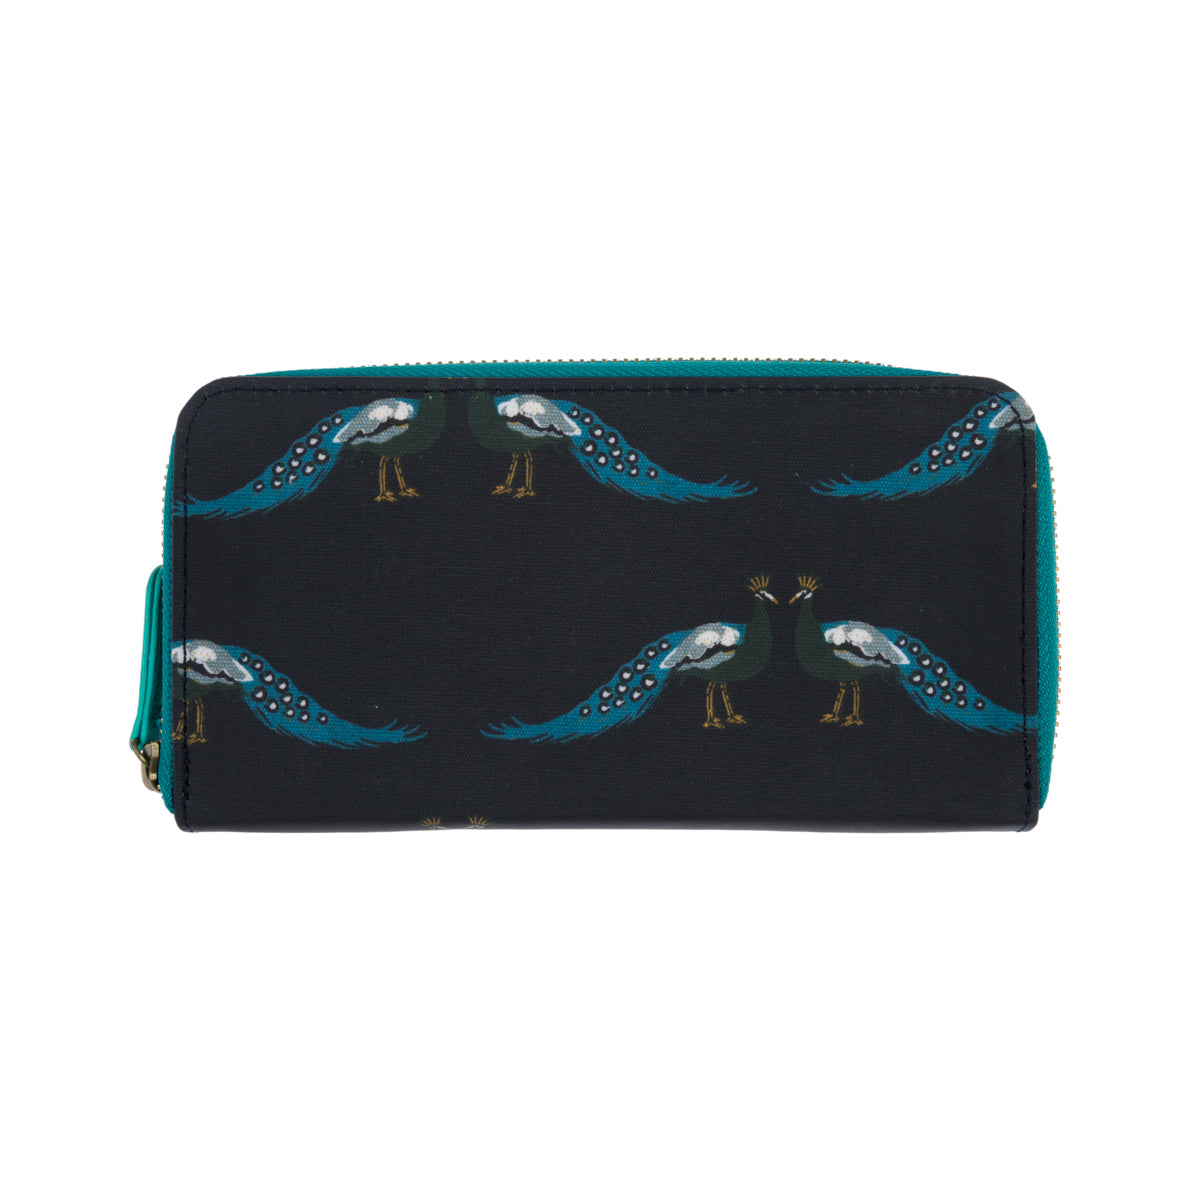 Peacocks Oilcloth Zipped Wallet Purse